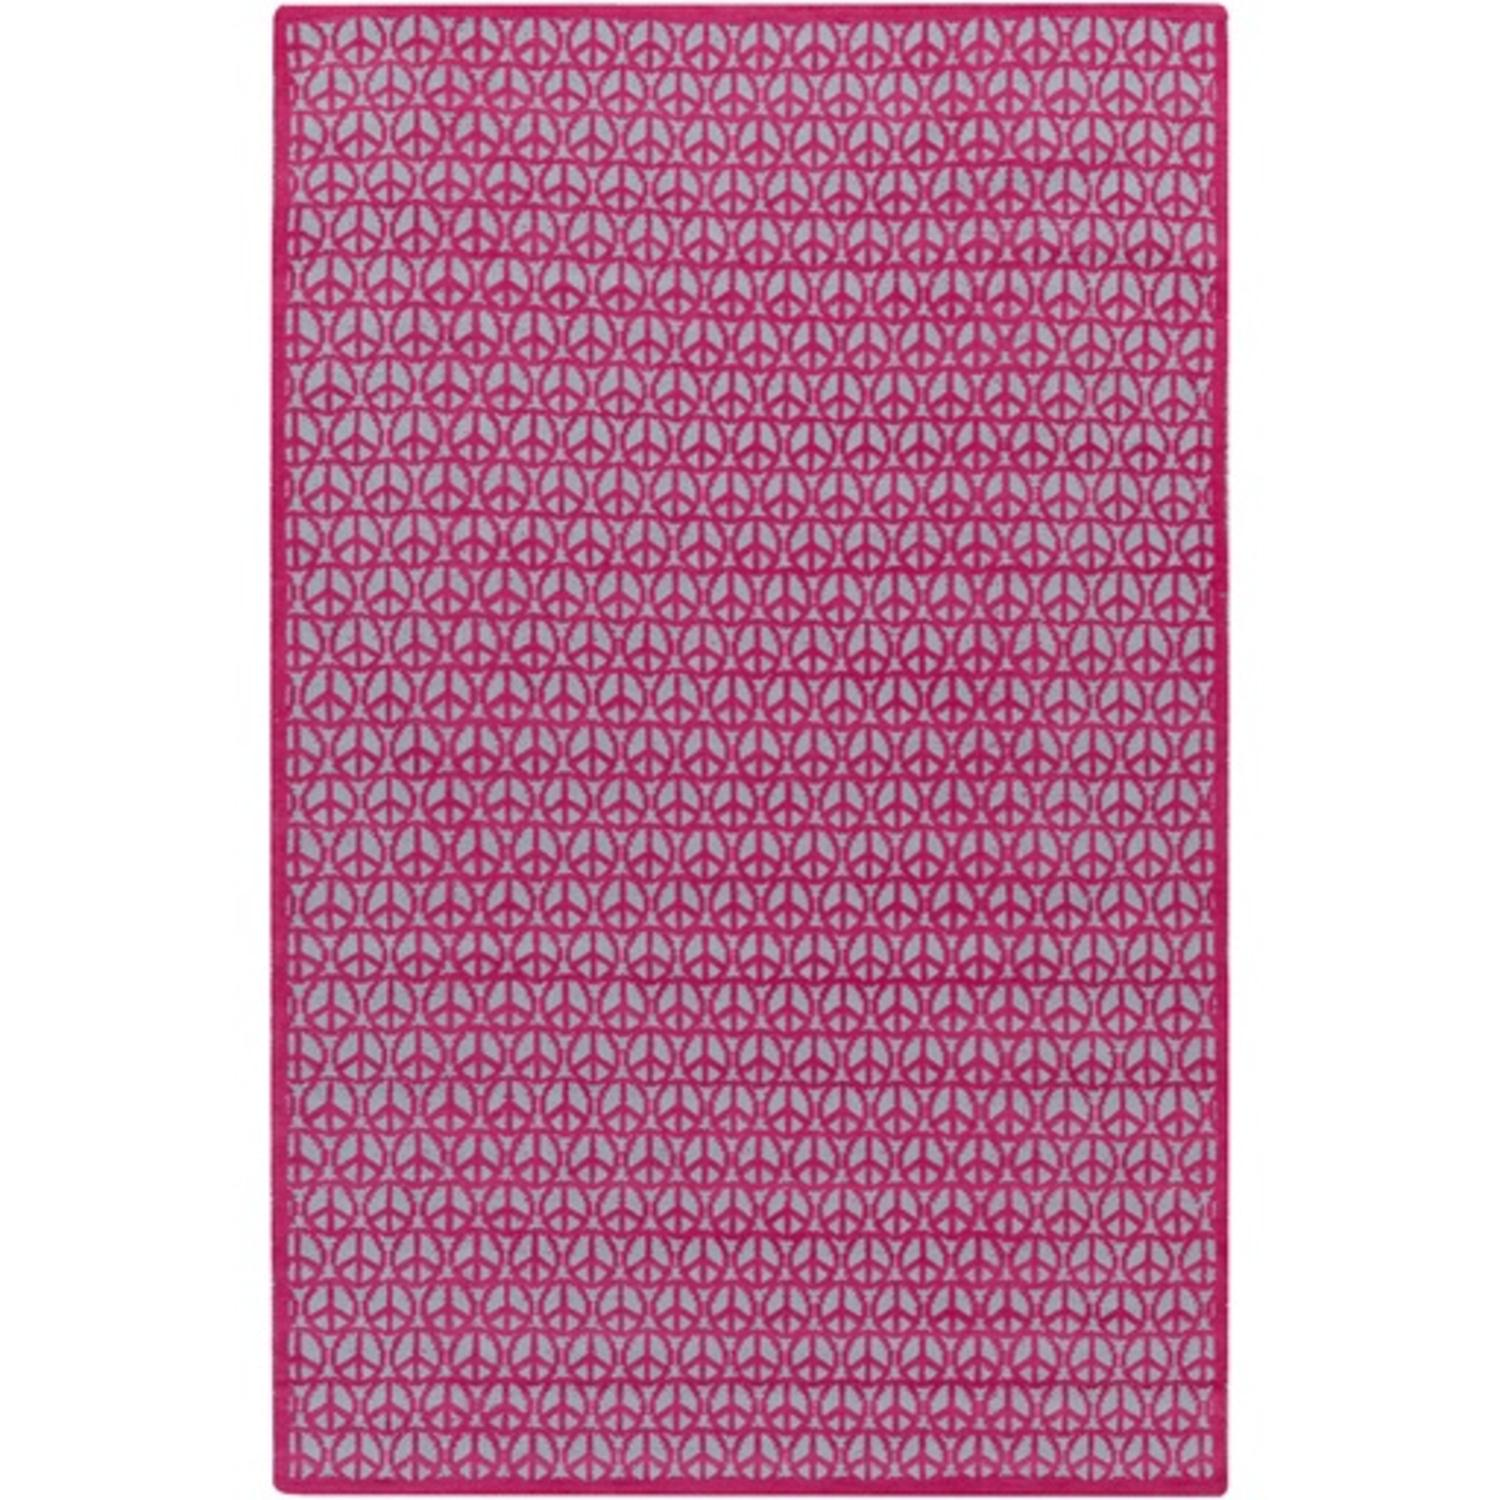 2' x 3' Land of Peace Hot Pink and Slate Gray Hand Woven Wool Area Throw Rug